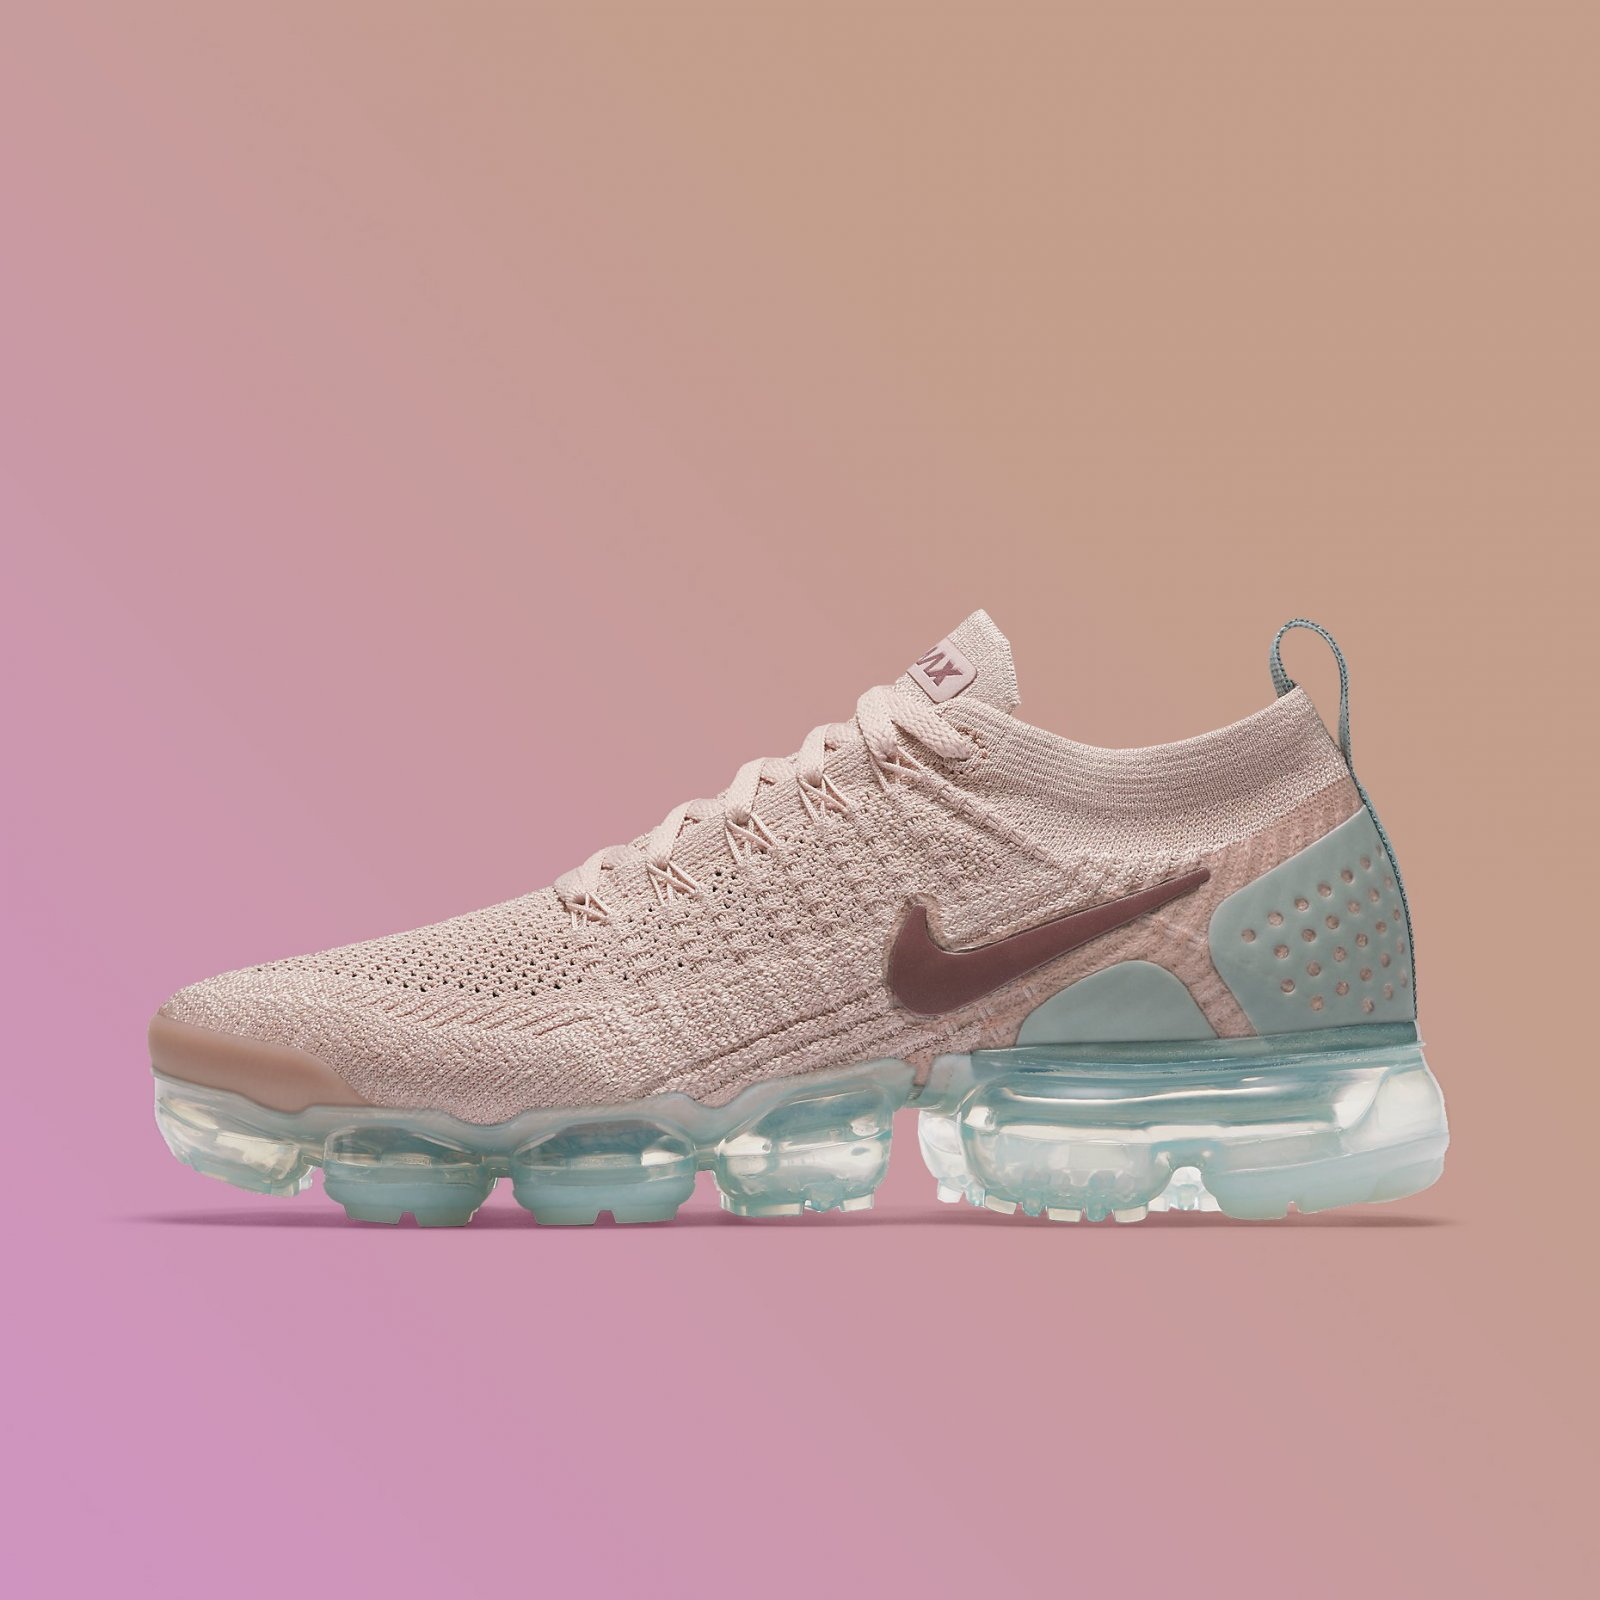 b450df1e43 Details about Nike Women's Air VaporMax Flyknit 2 Particle Beige Mauve  Running Shoe 942843-203